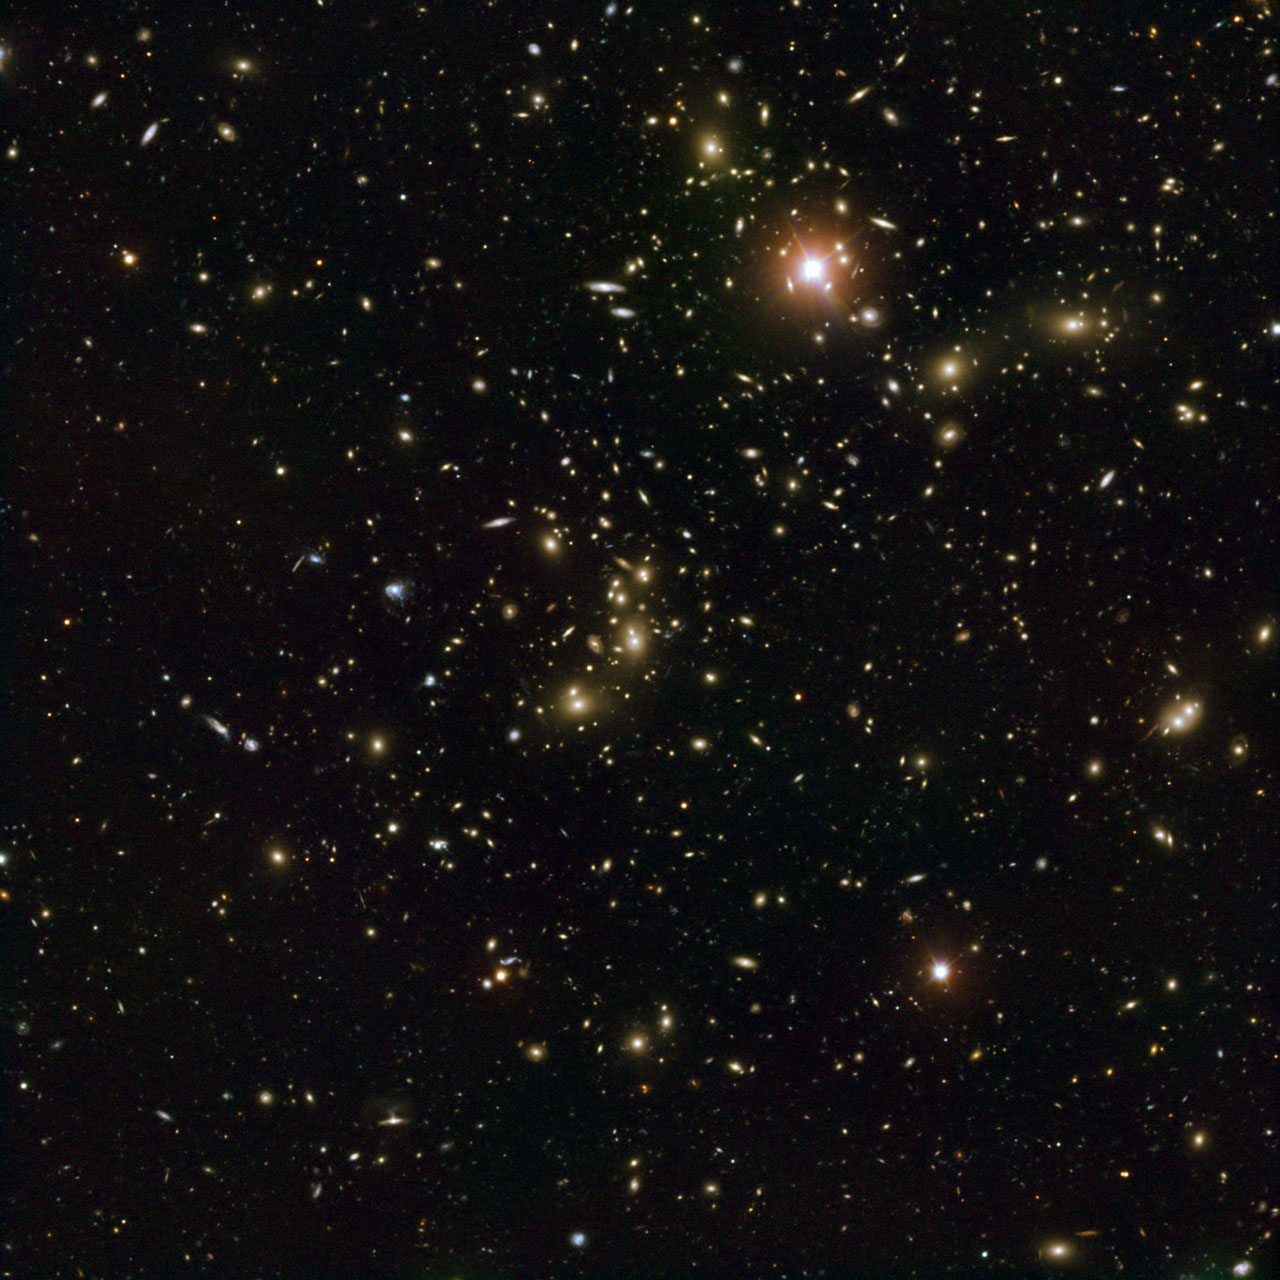 Original View From the Hubble Telescope - Pics about space